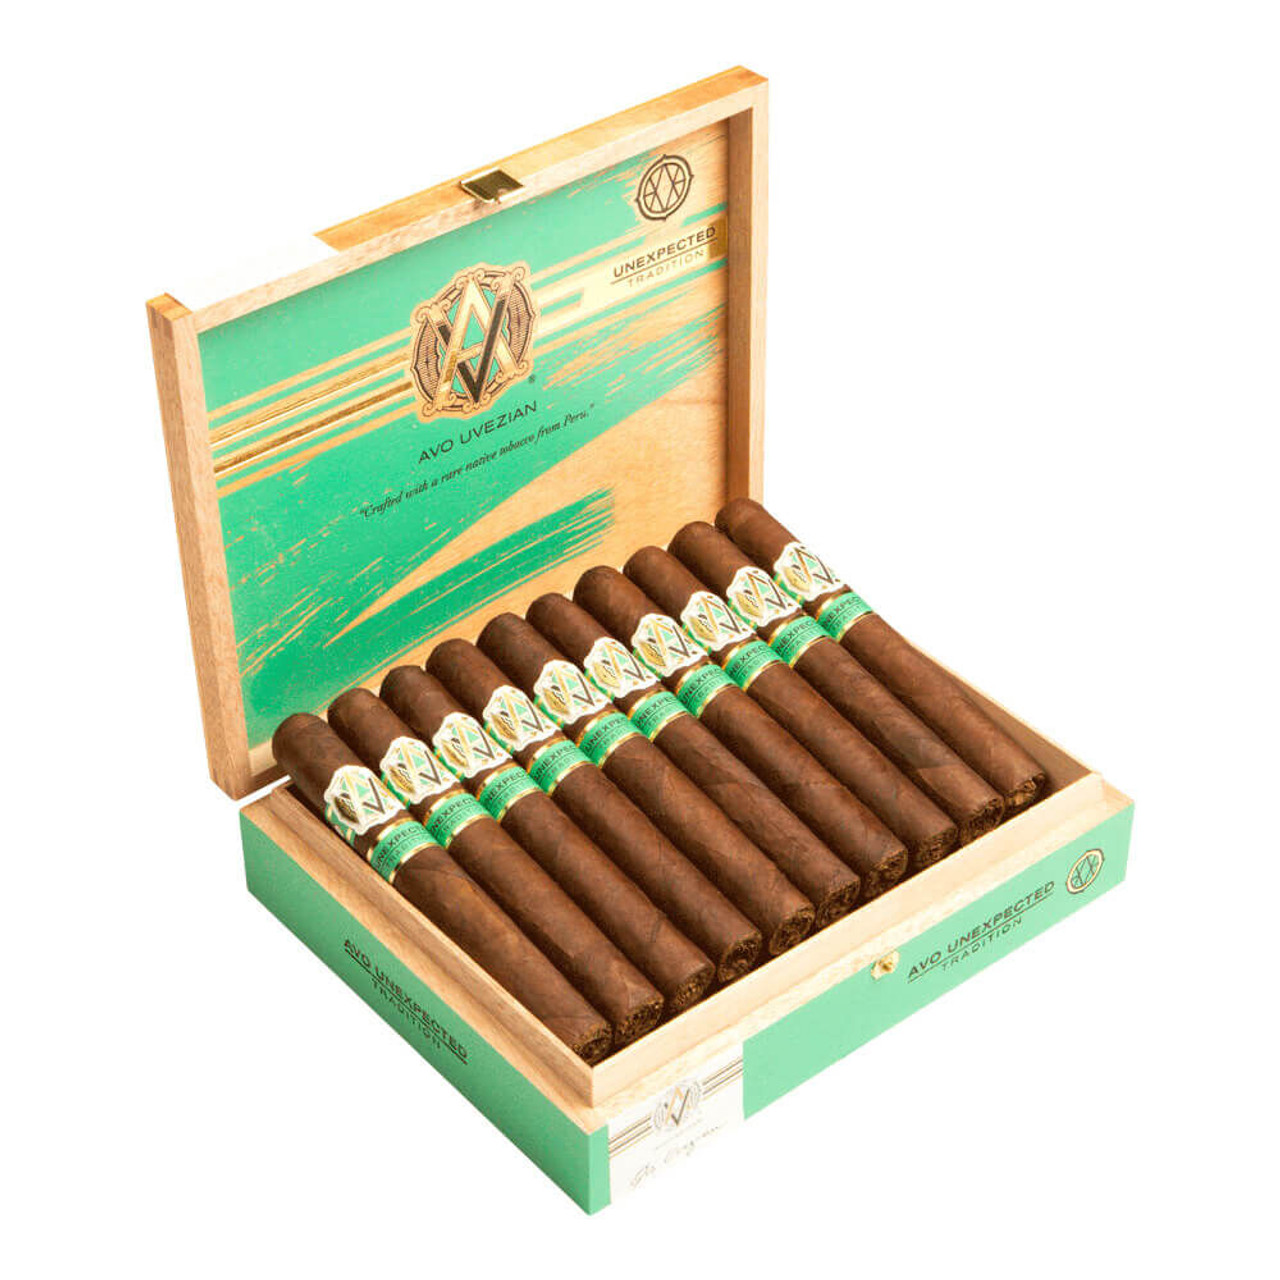 AVO Unexpected Series Moment Cigars - 6 x 54 (Box of 20)